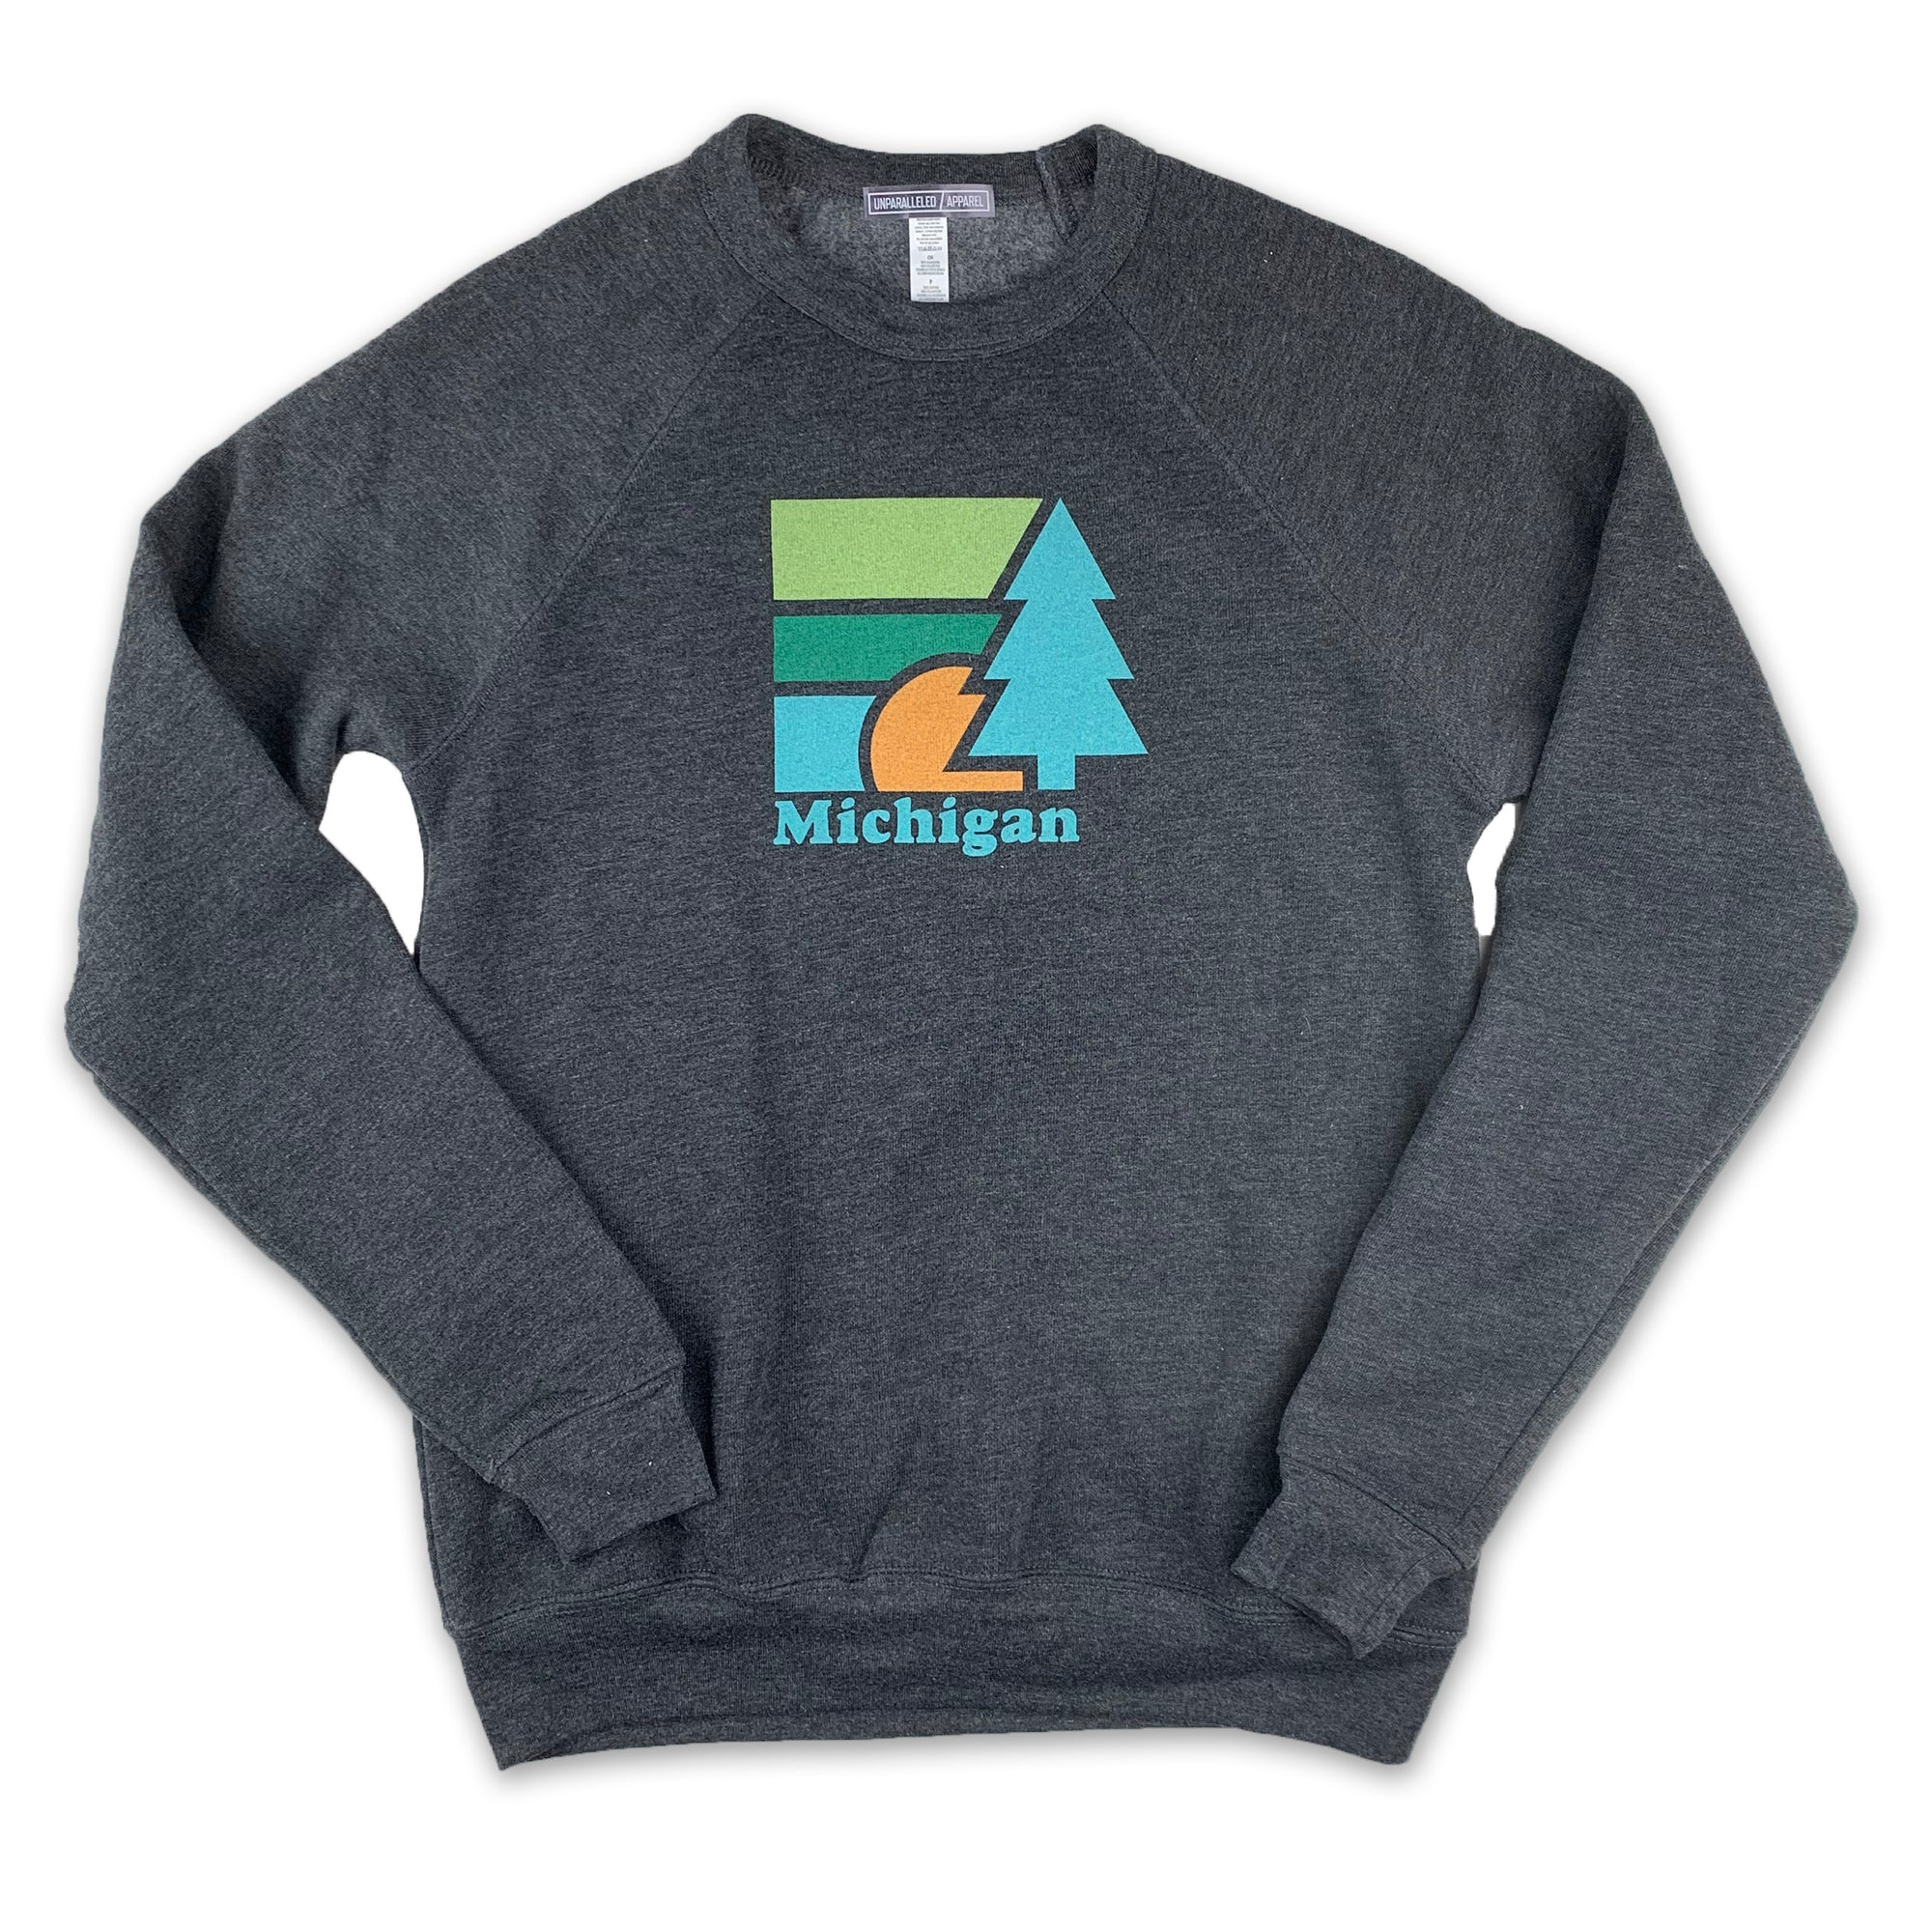 Michigan Retro Tree Crewneck Sweatshirt - Unparalleled Apparel